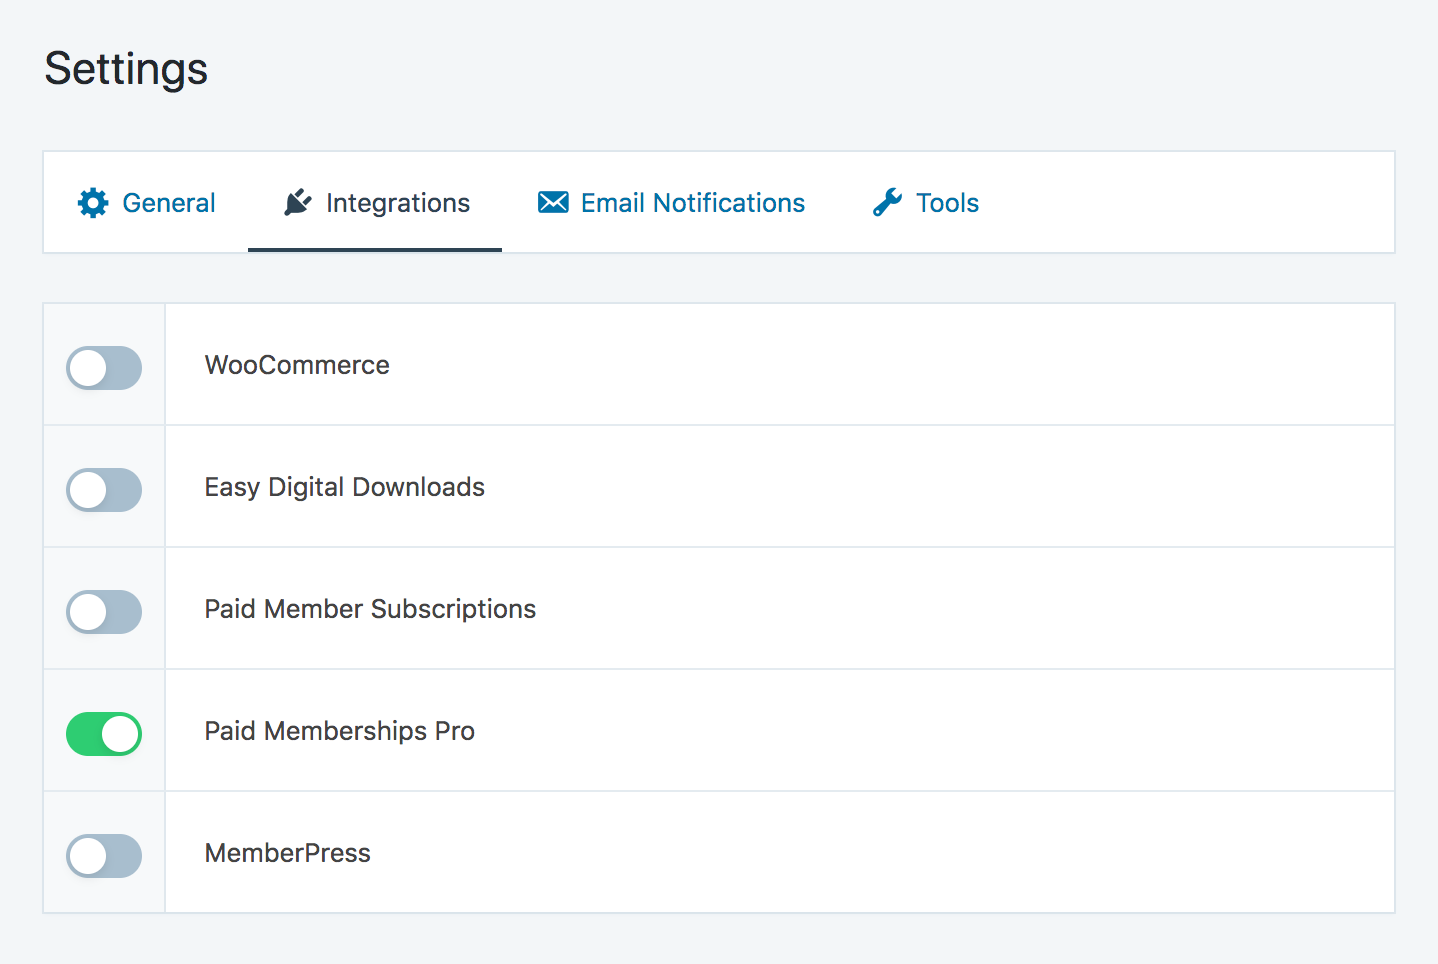 Enabling Paid Memberships Pro integration in SliceWP settings page.